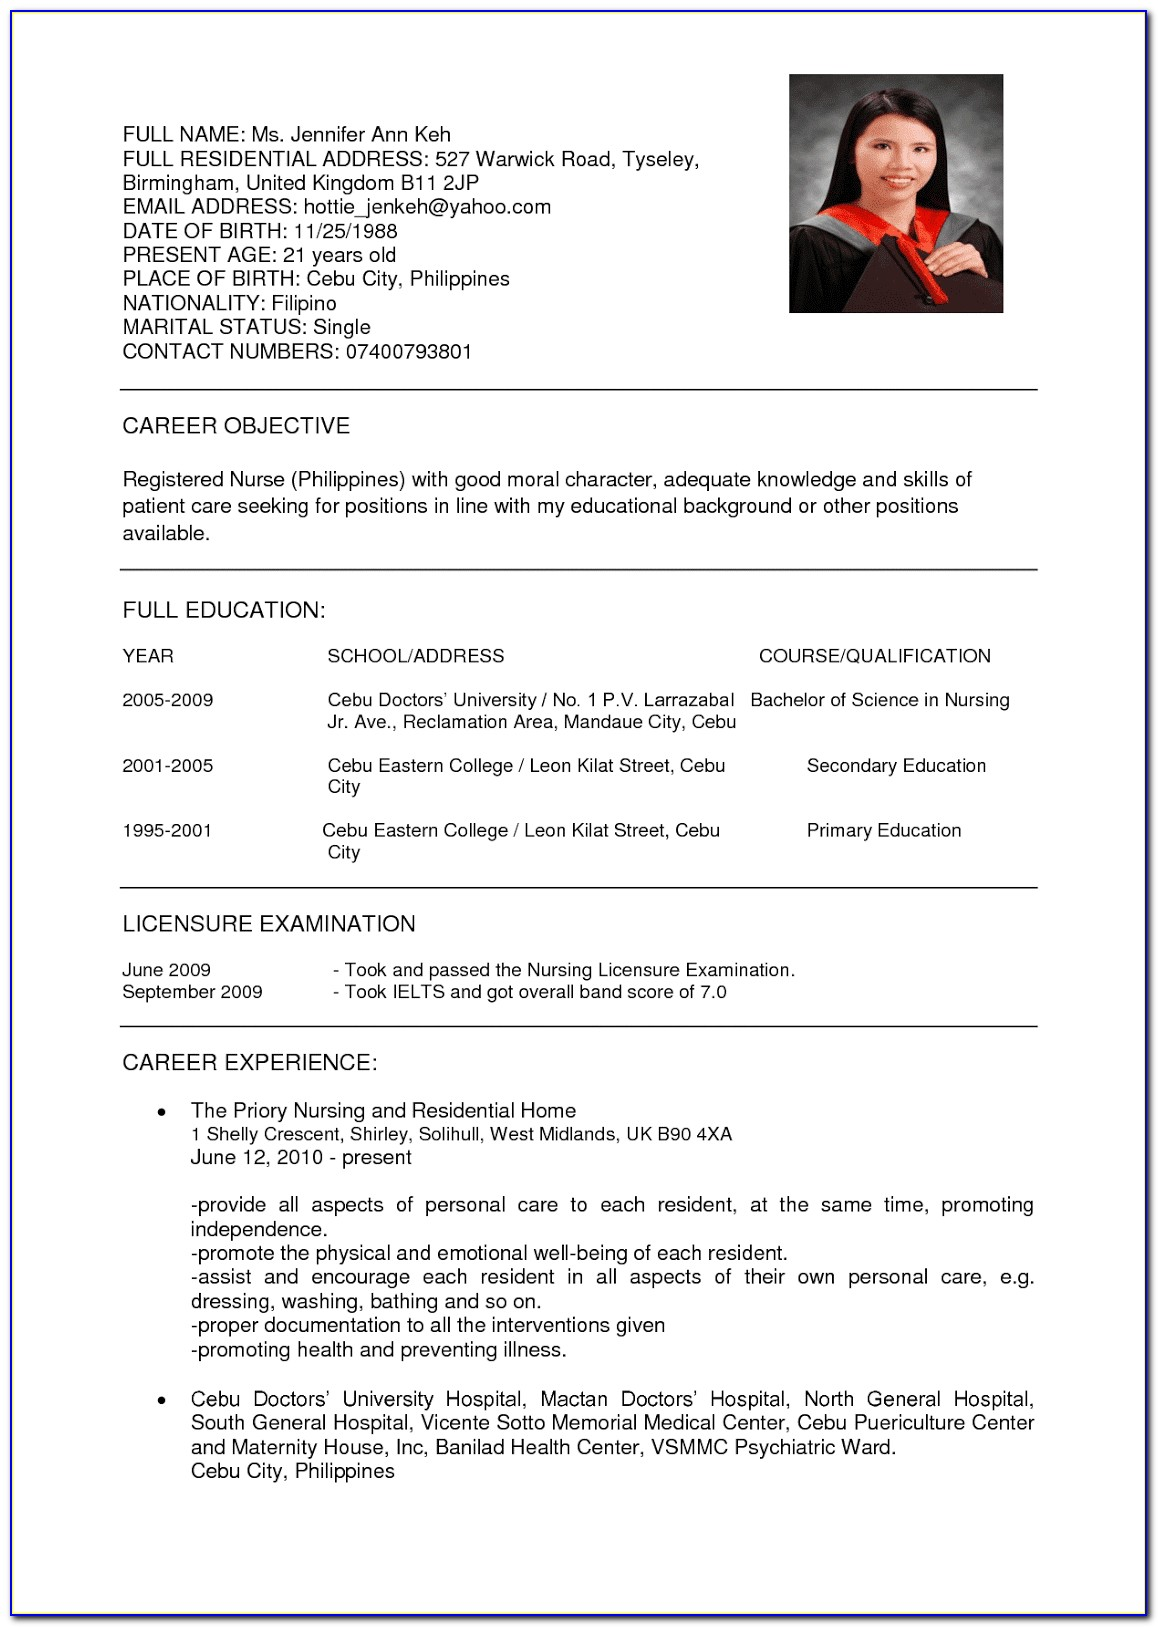 Resume Objective Examples For Registered Nurses